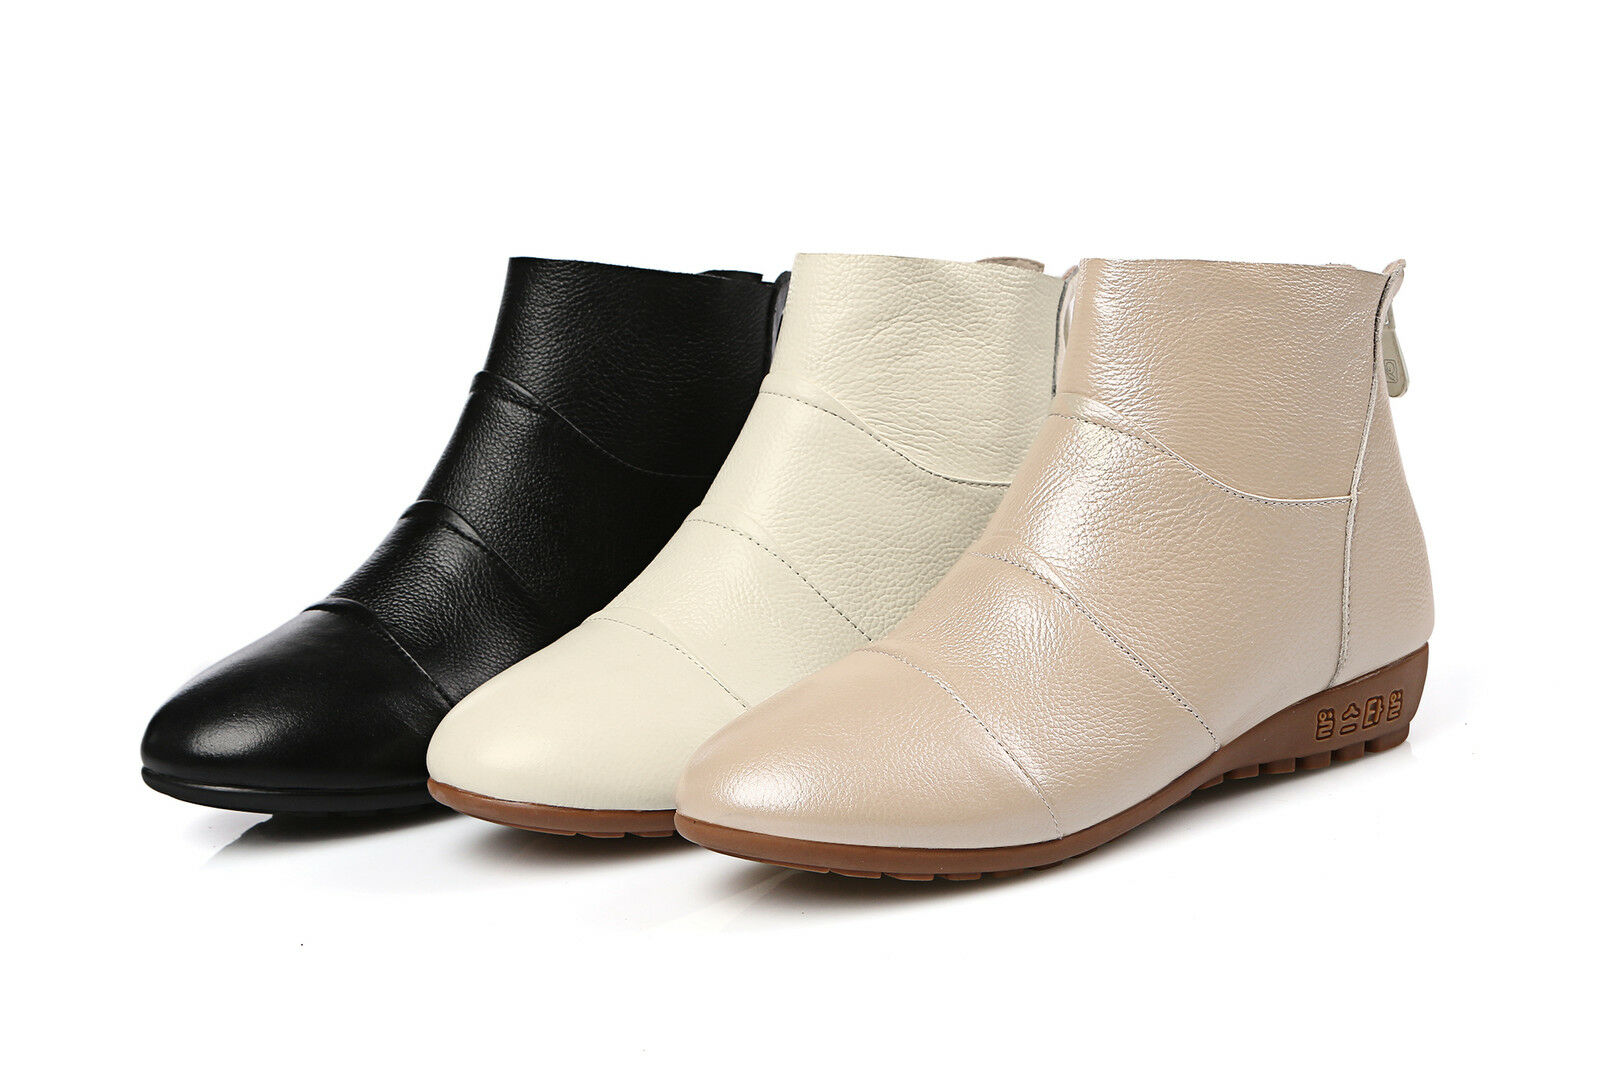 Ladies Casual shoes Genuine Leather Flats Low Heels Zip Ankle Boots US Size 2019